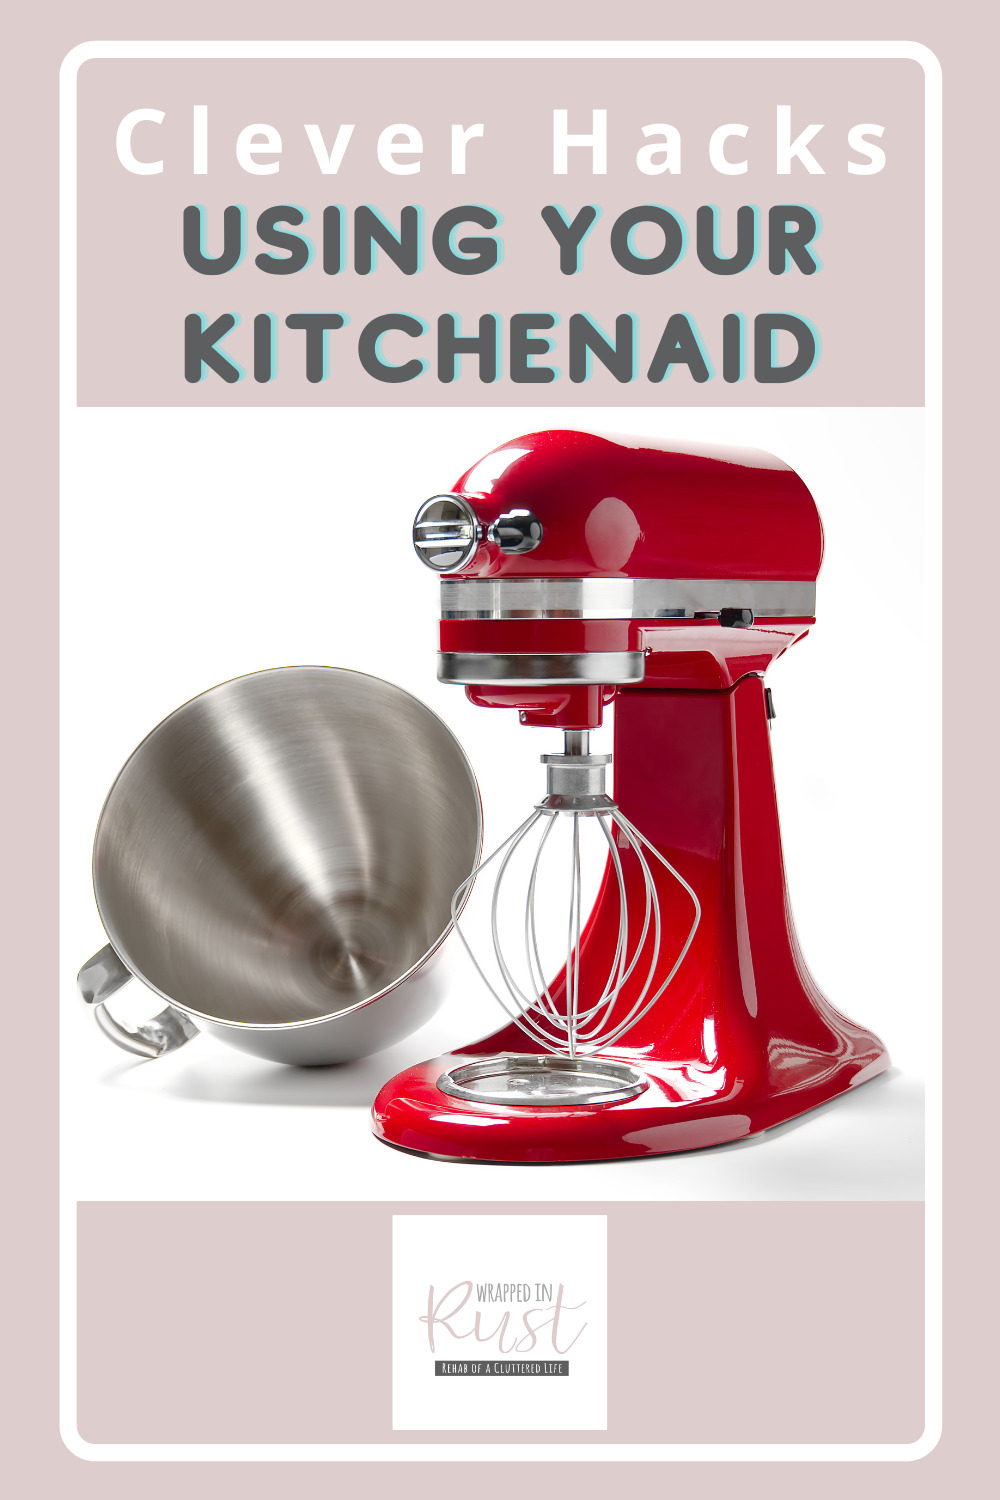 Wrappedinrust.com makes life simpler with cleaning ideas and hacks. Find out how you can get your kitchen clean and keep it that way! These kitchen aid hacks will make cooking easier and less messy!